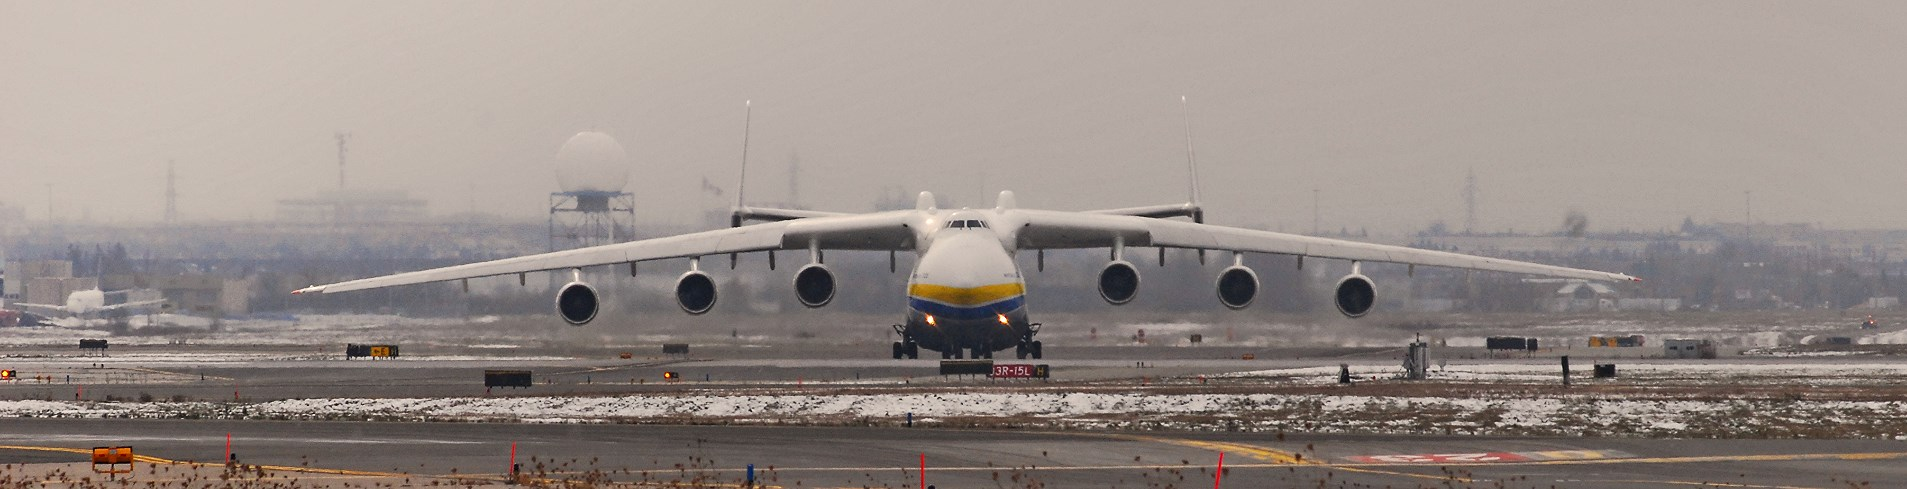 Antonov An-225 prepares for takeoff. (Photo courtesy of Flickr user: aseemsjohri)